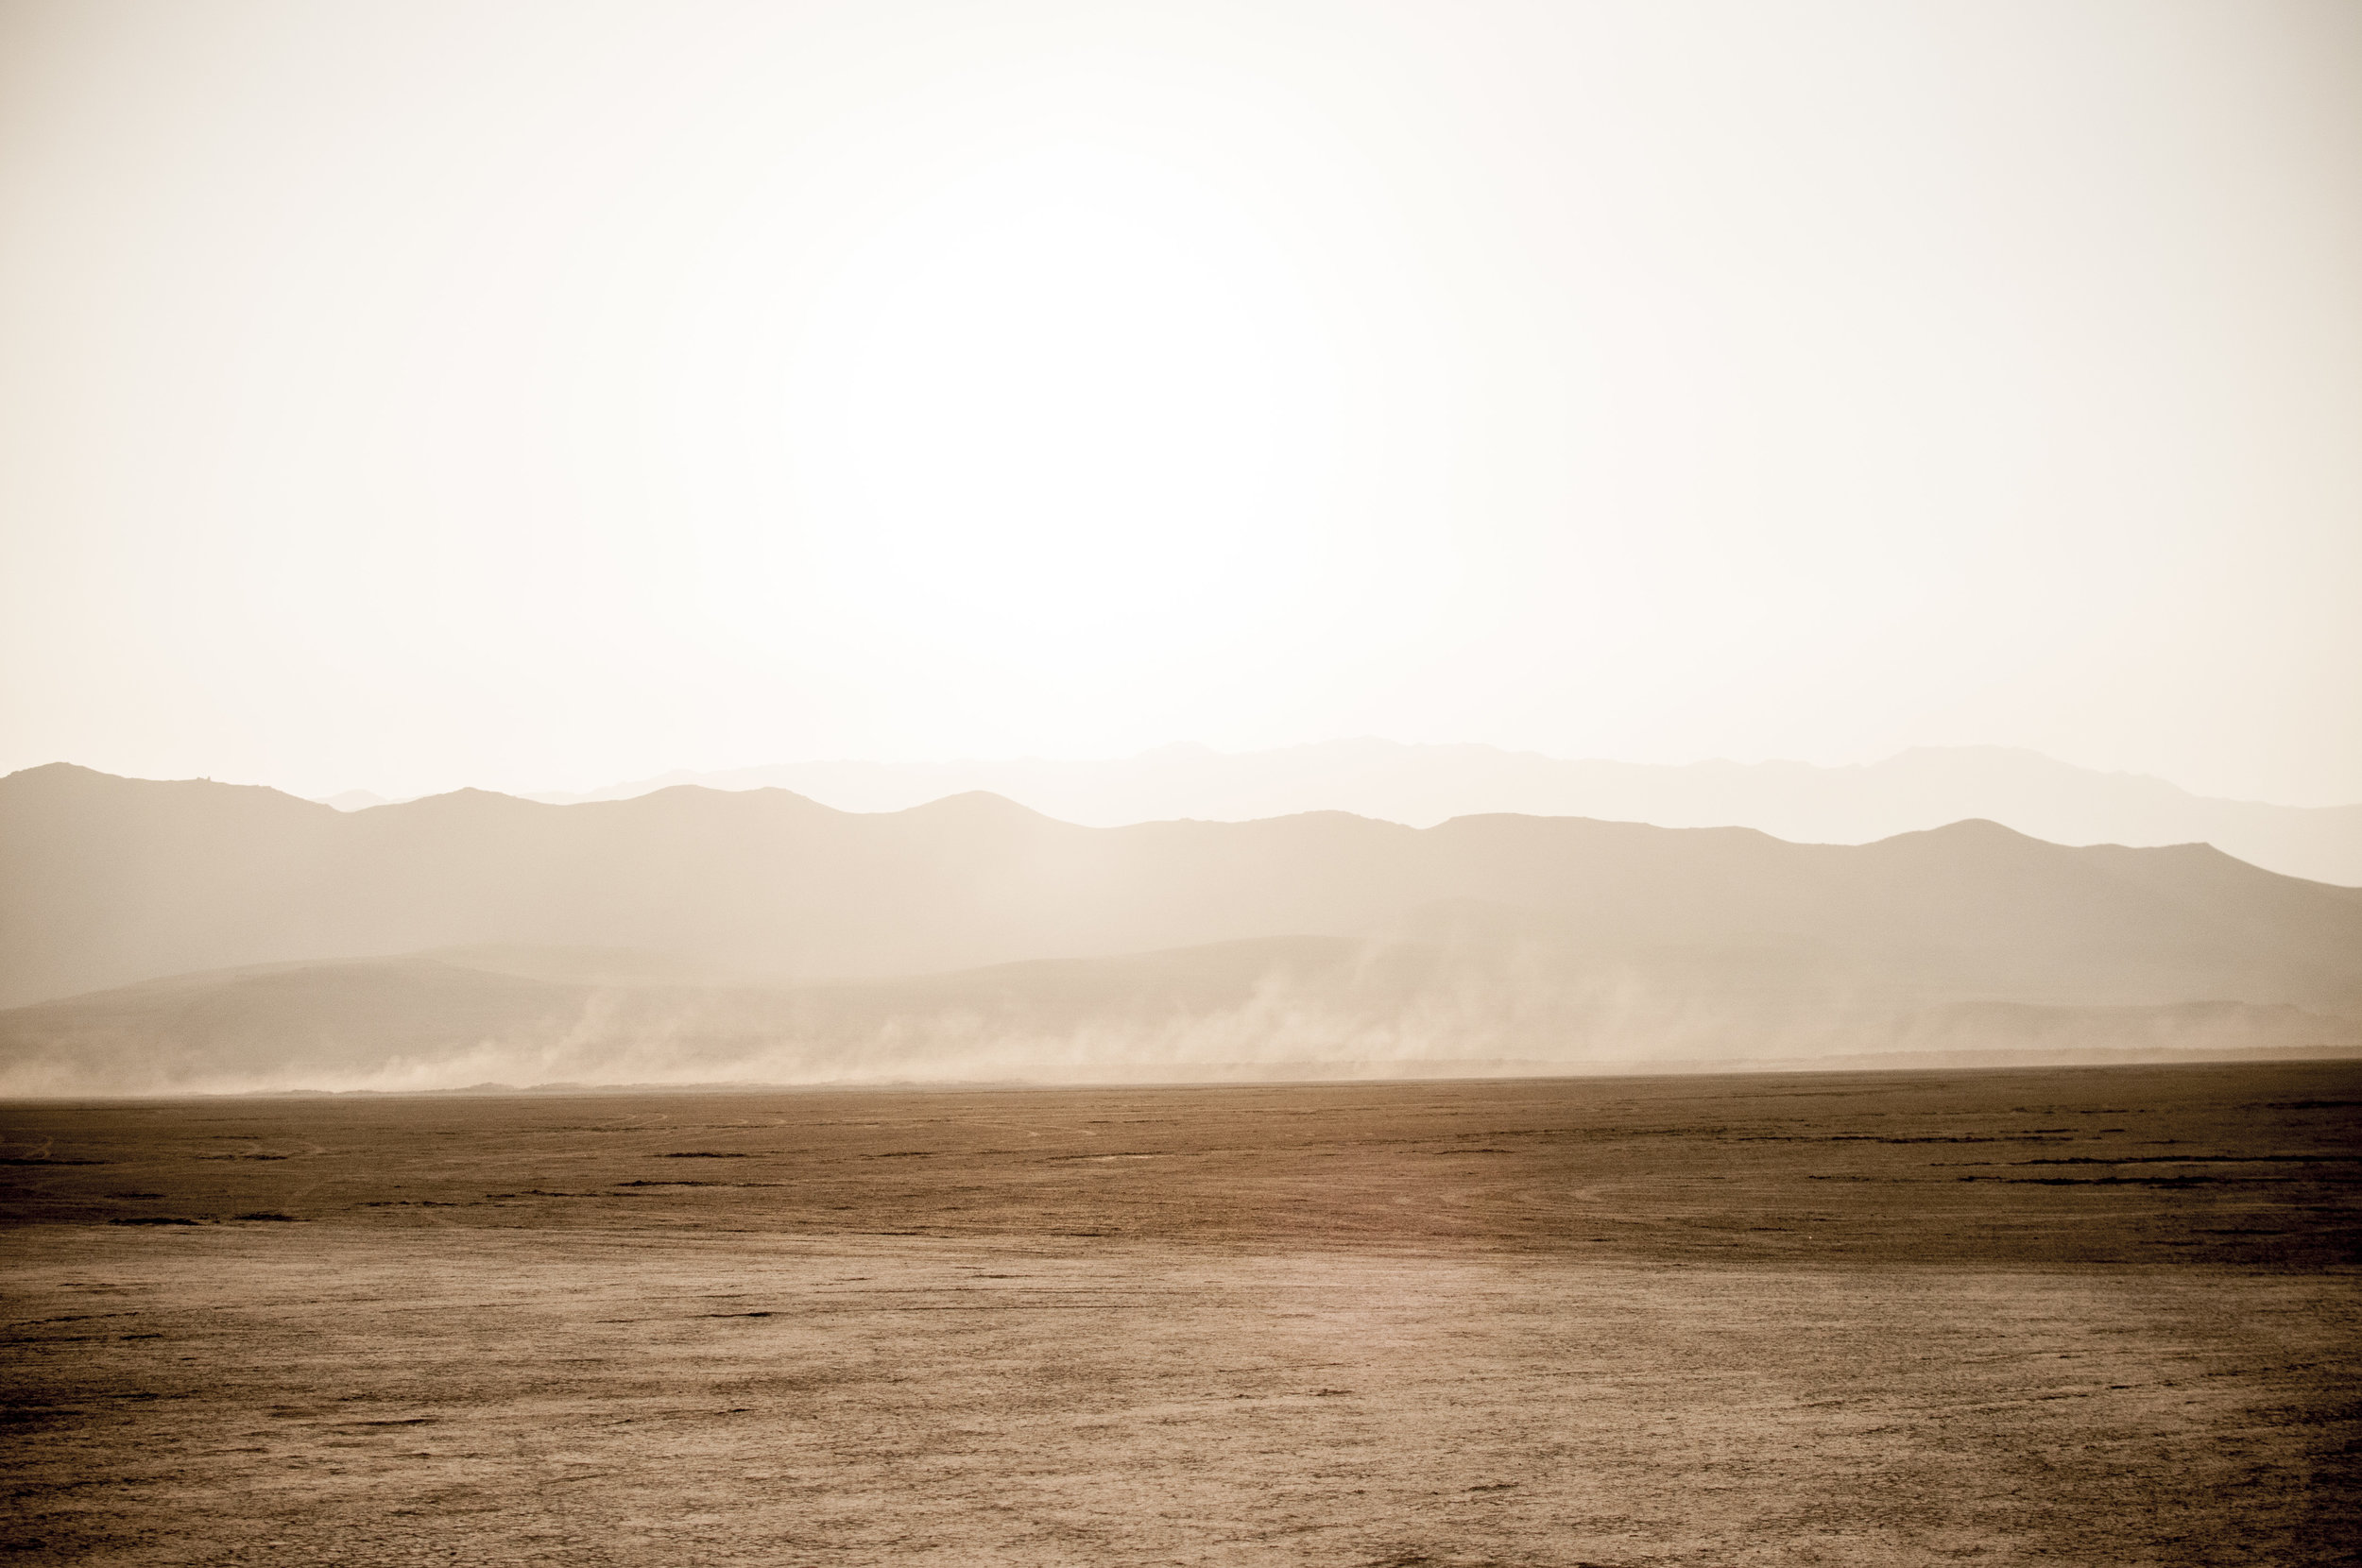 Black Rock Desert, United States